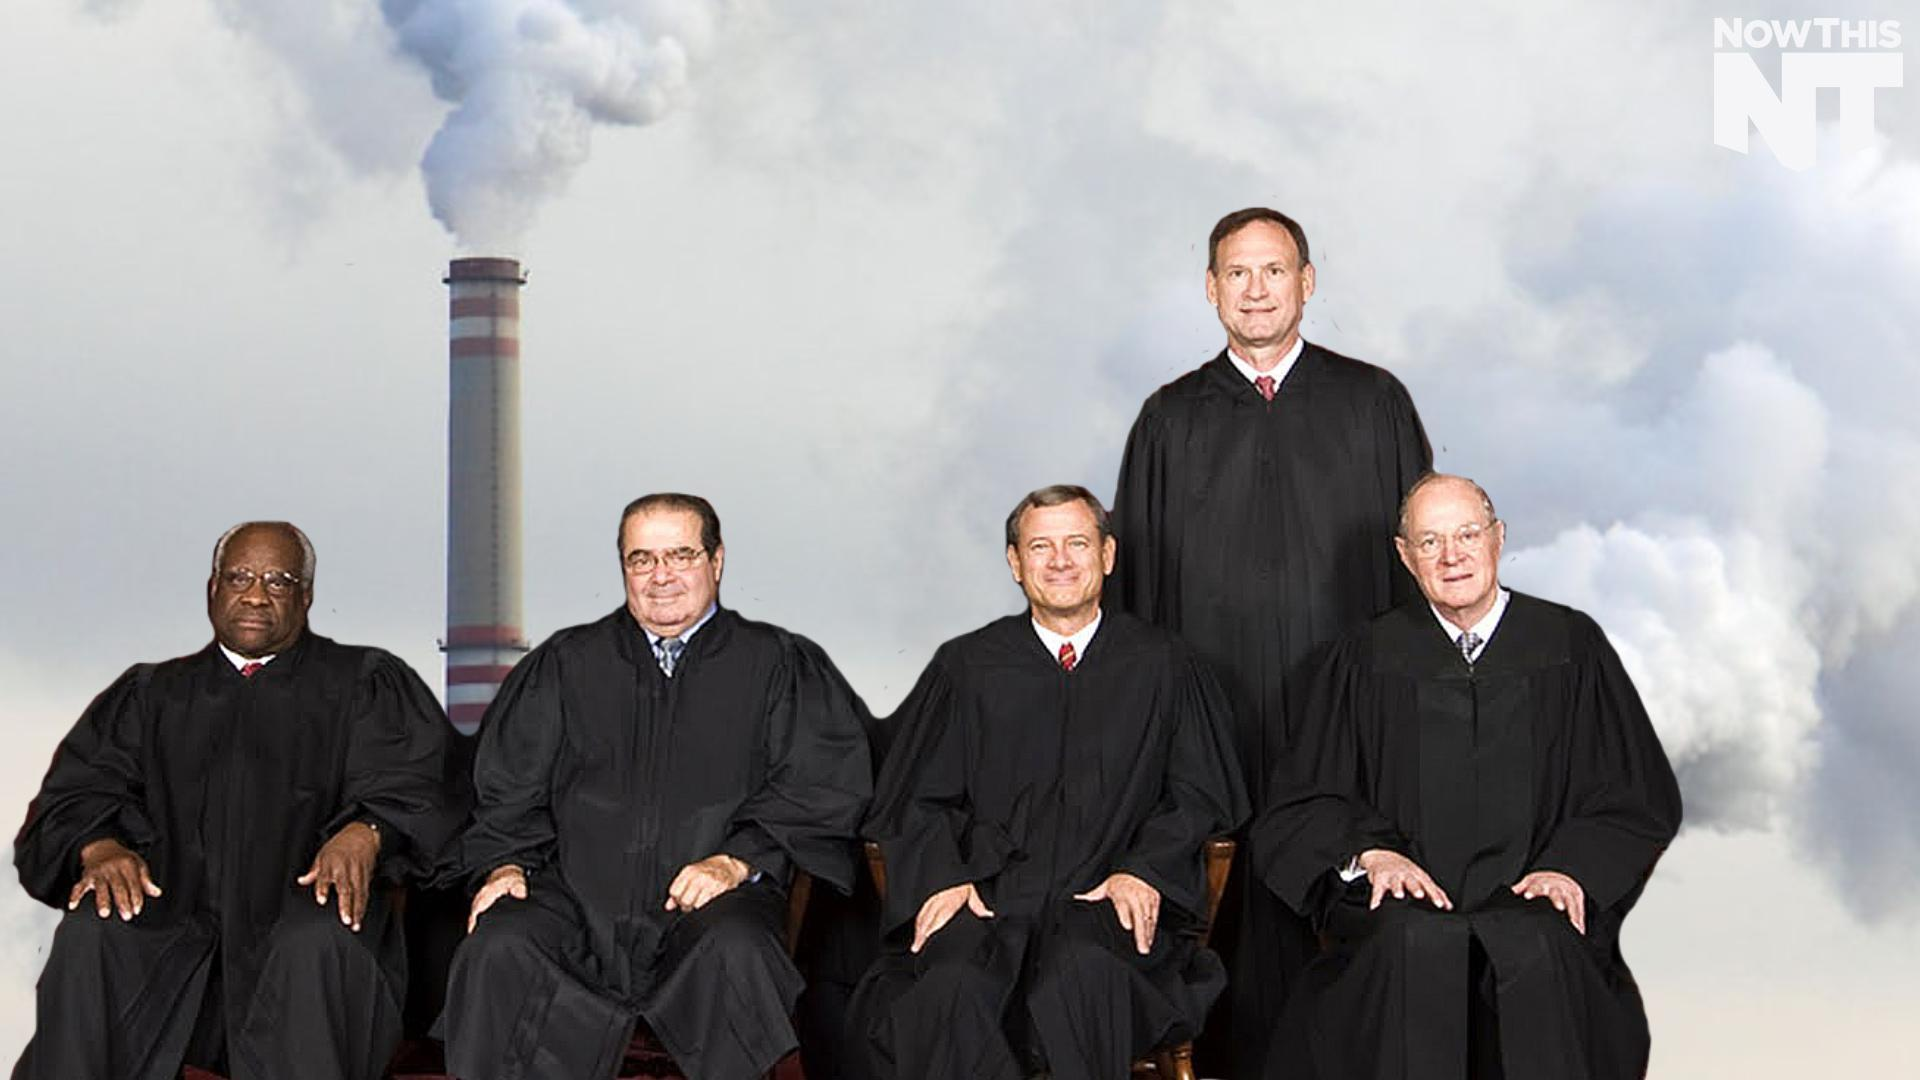 The Supreme Court Blocks EPA Regulations